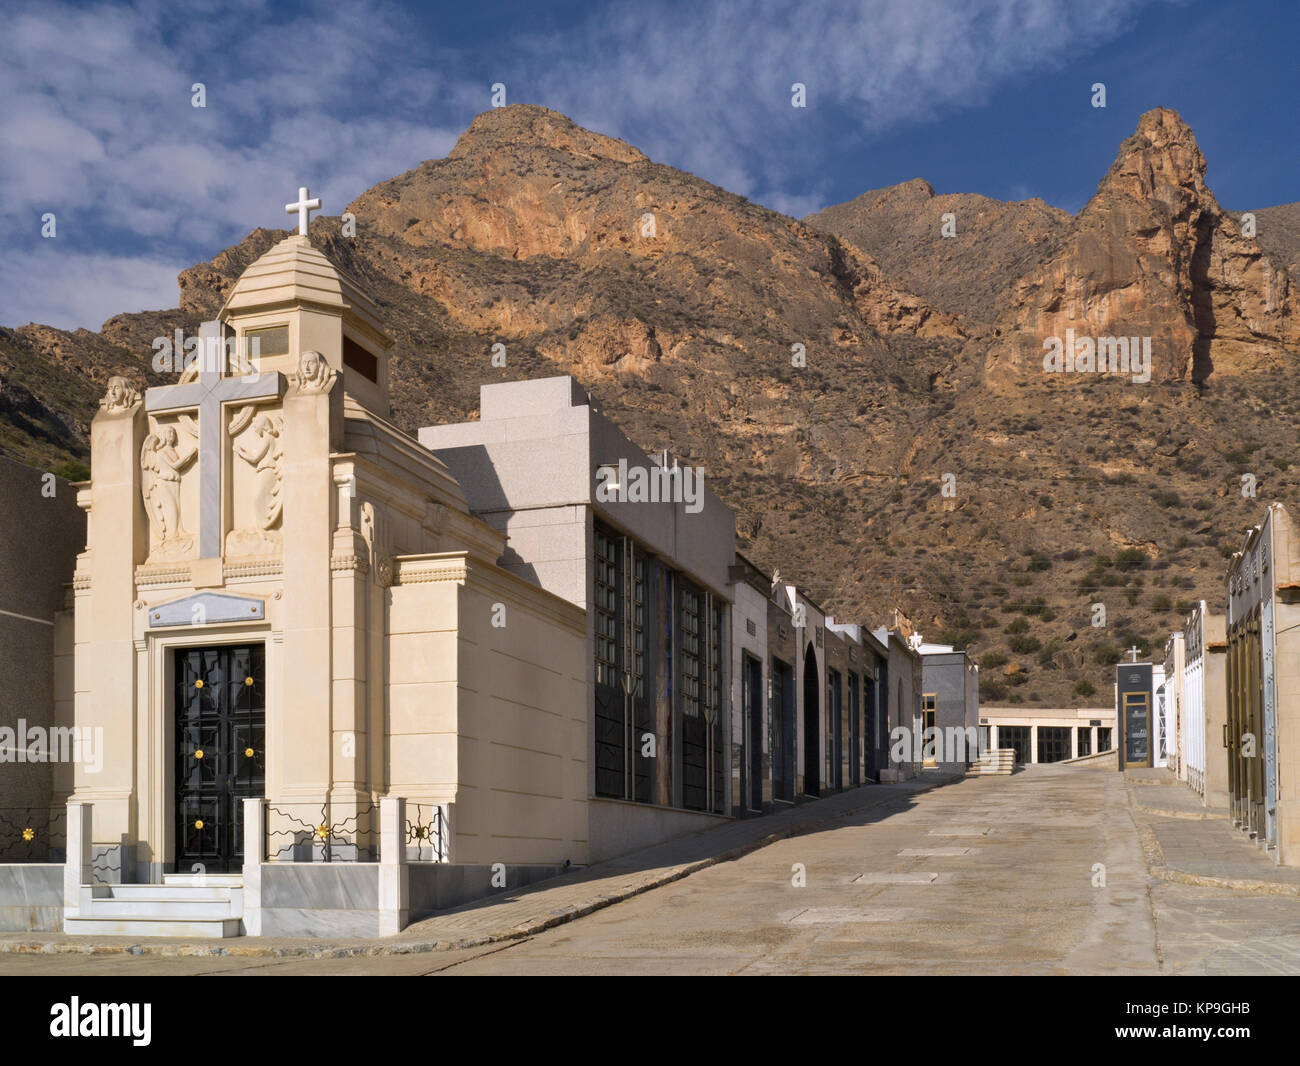 The Callosa De Segura Cemetery on the Costa Blanca in Spain. - Stock Image